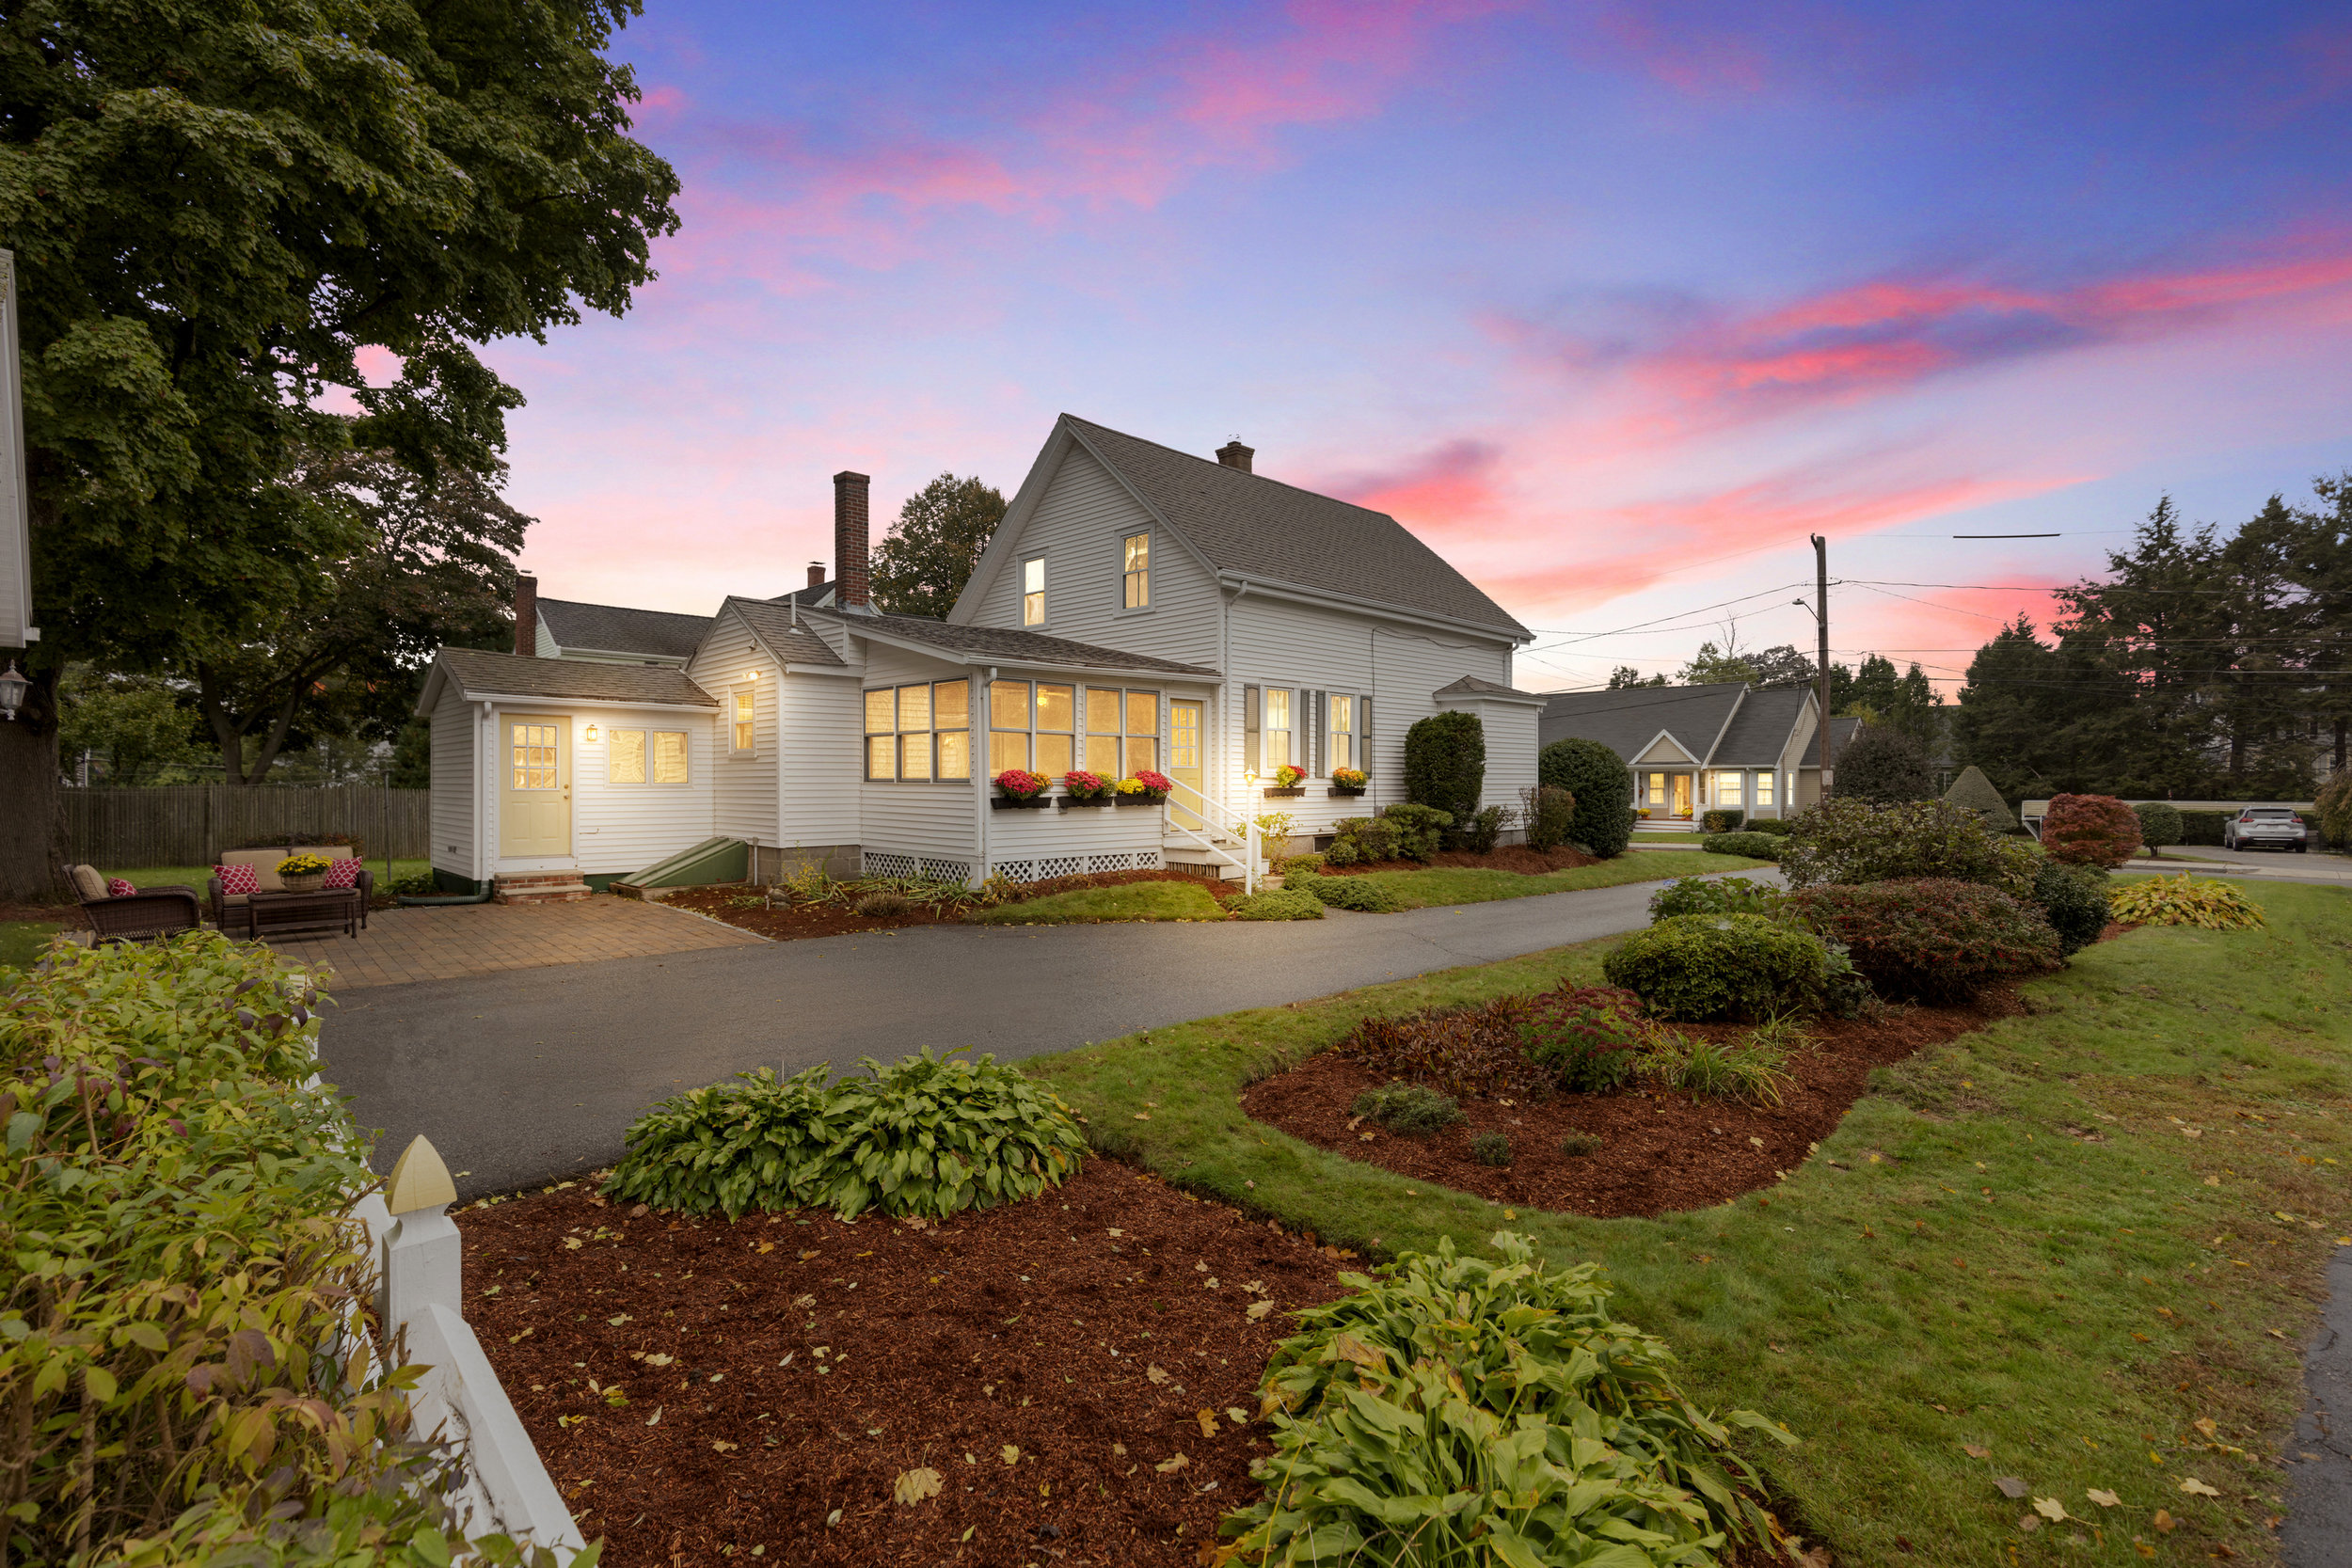 REAL ESTATE PHOTOS ONLY - Approximately 30 magazine quality property photos, delivered within 24-36 hours